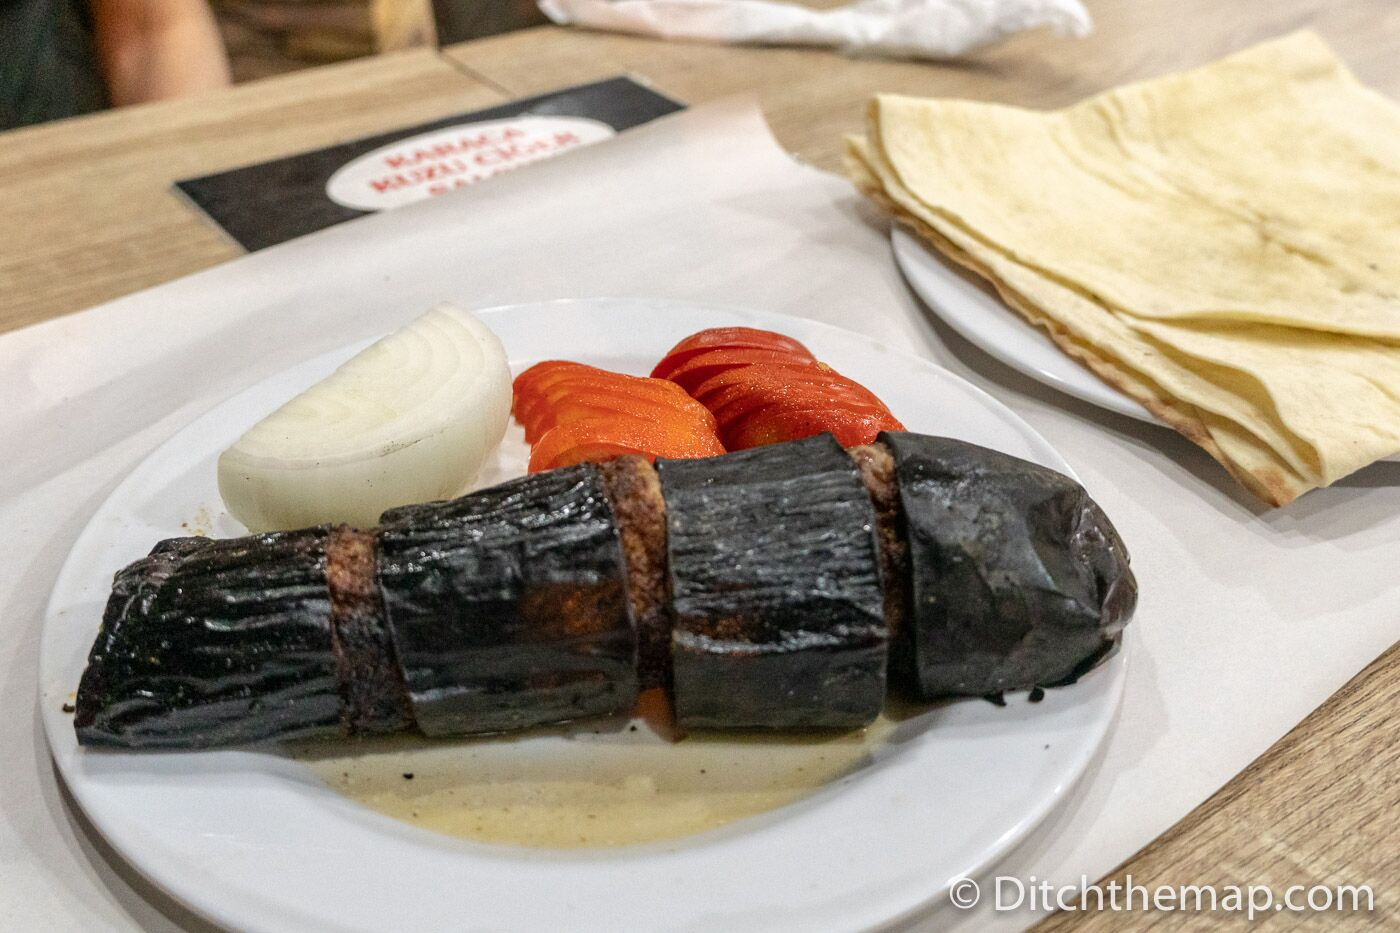 Eggplant kebab is another tasty local specialty to try in Sanliurfa, Turkey